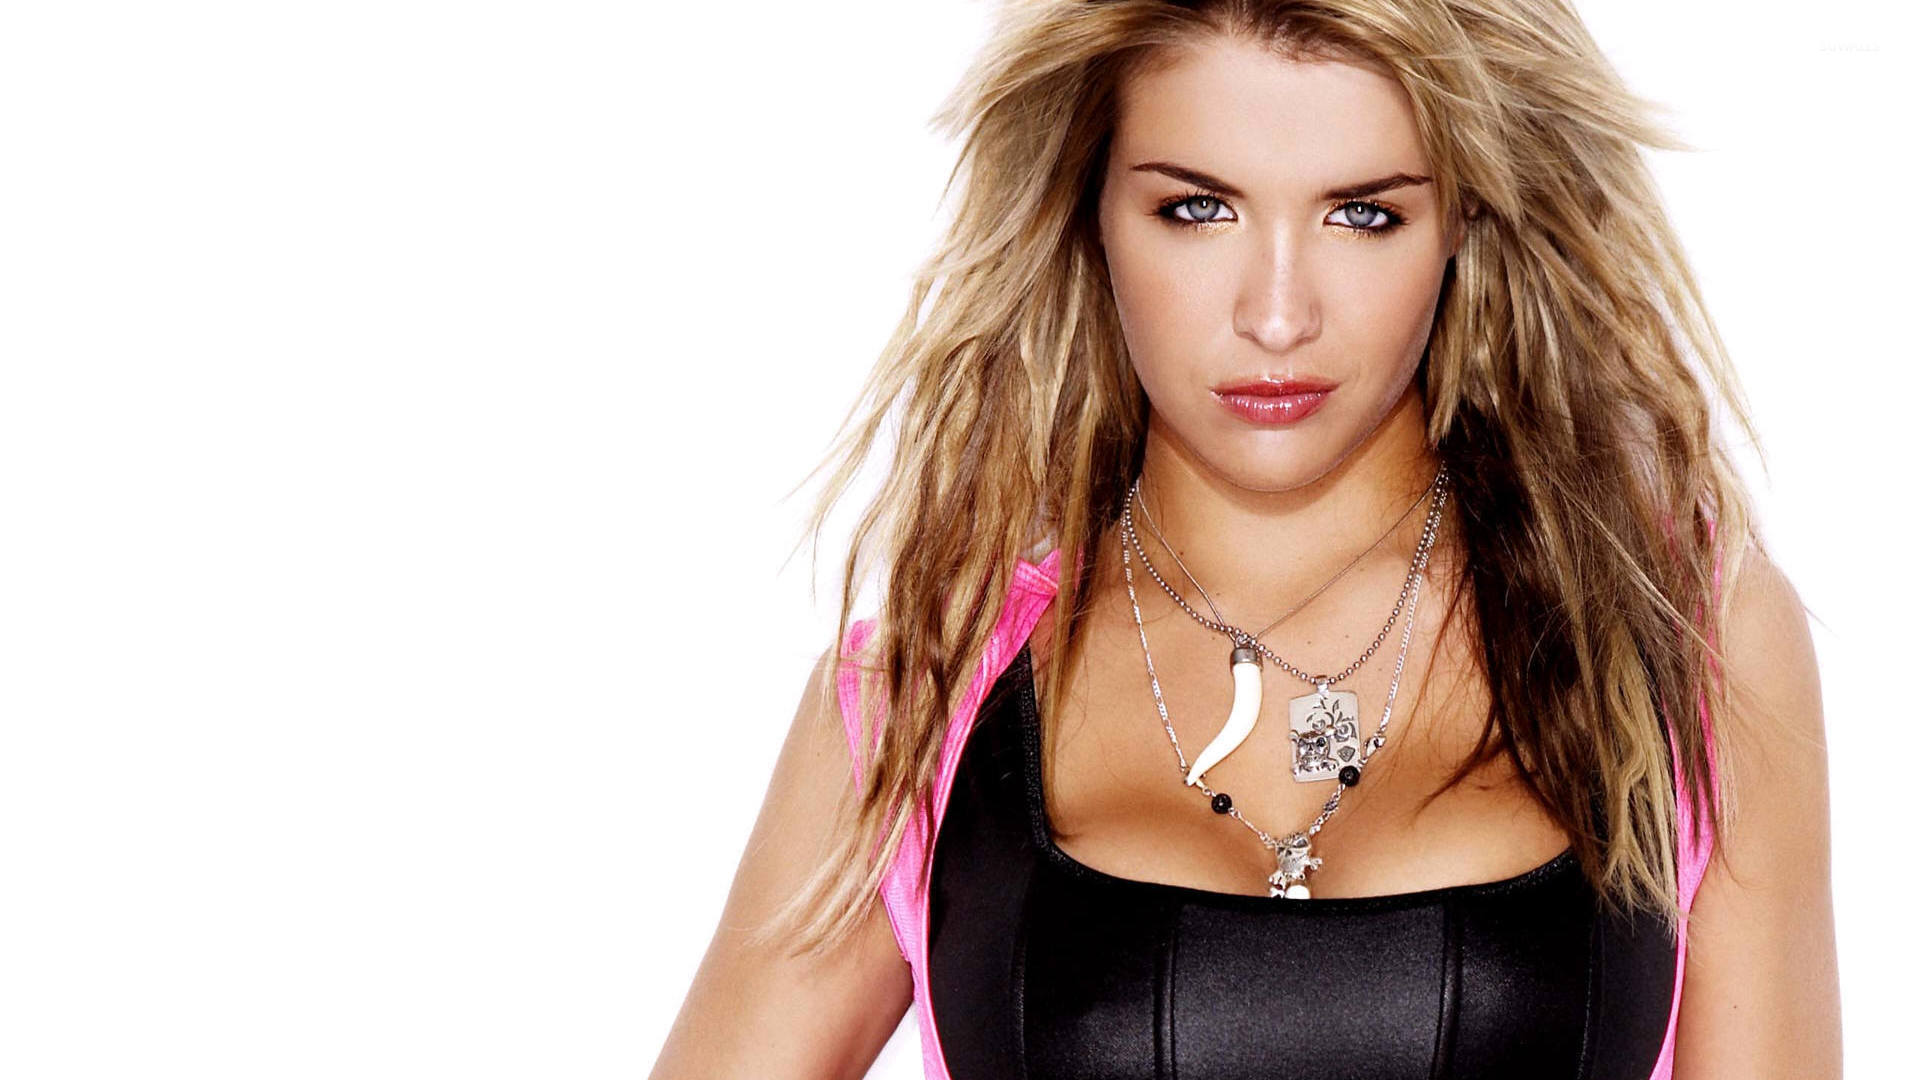 Gemma Atkinson [24] wallpaper - Girl wallpapers - #3174